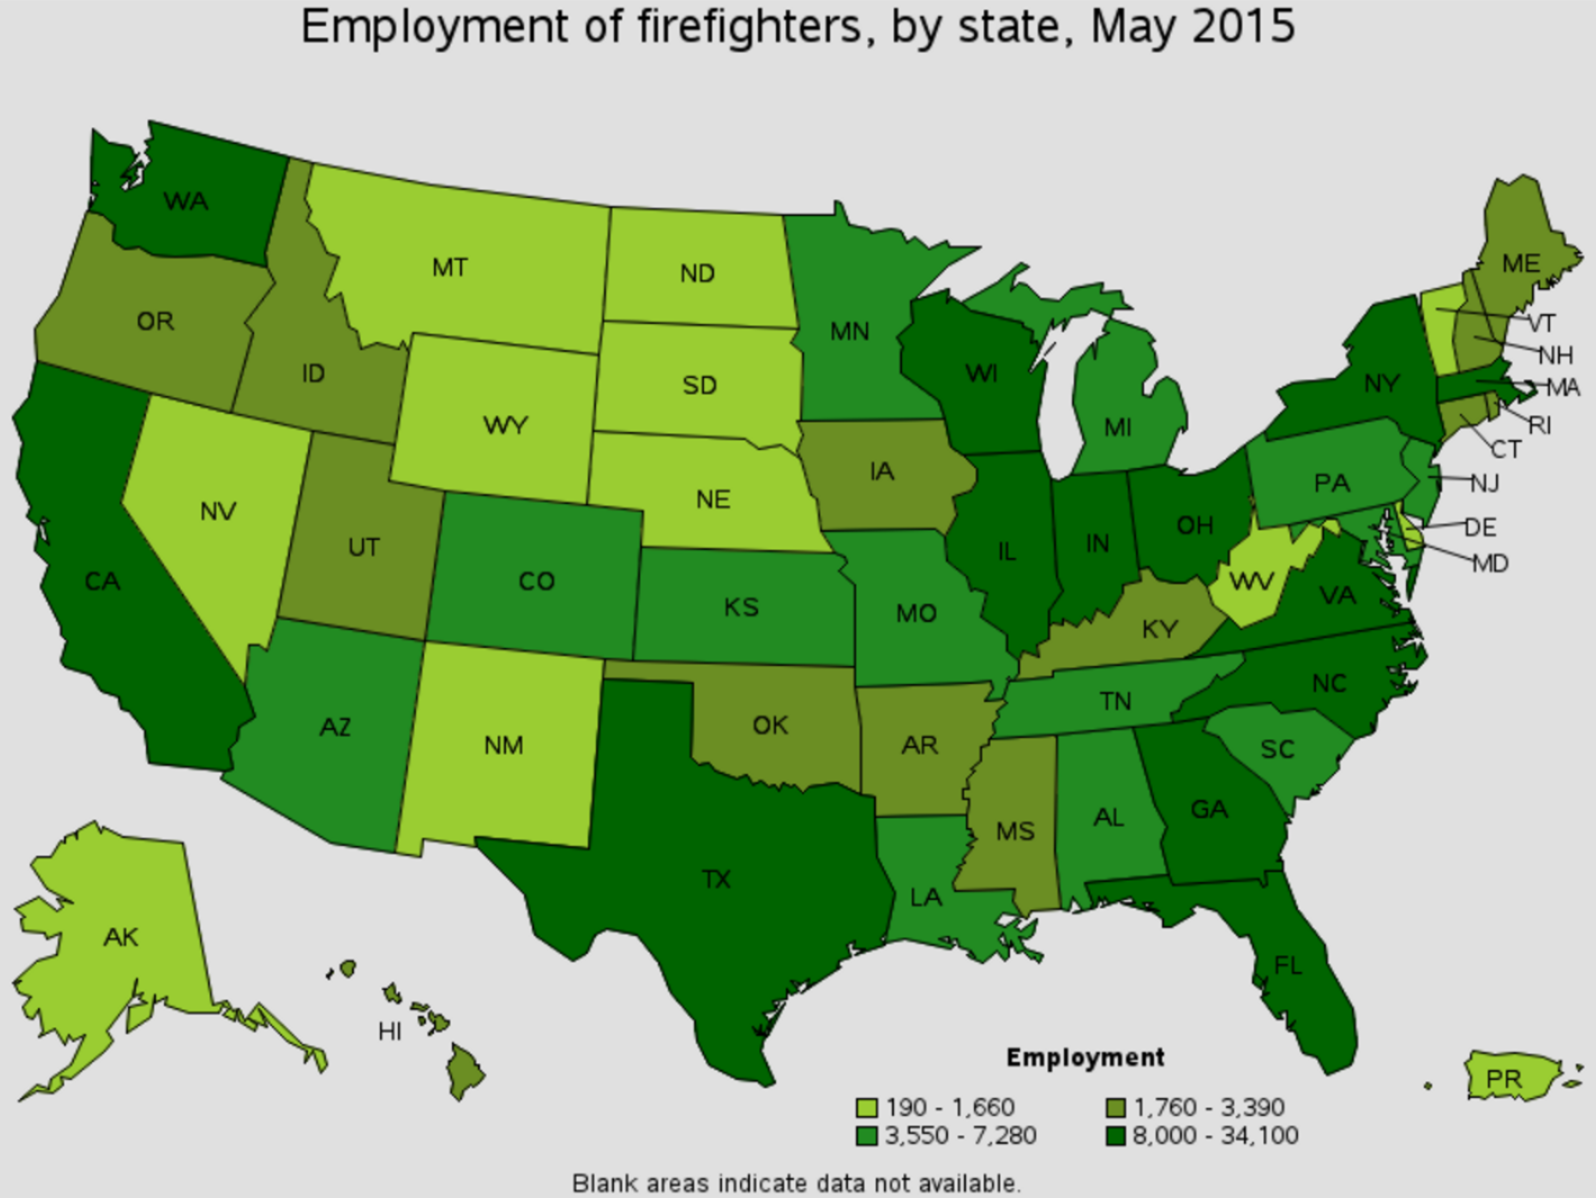 firefighter job outlook by state Frisco Texas